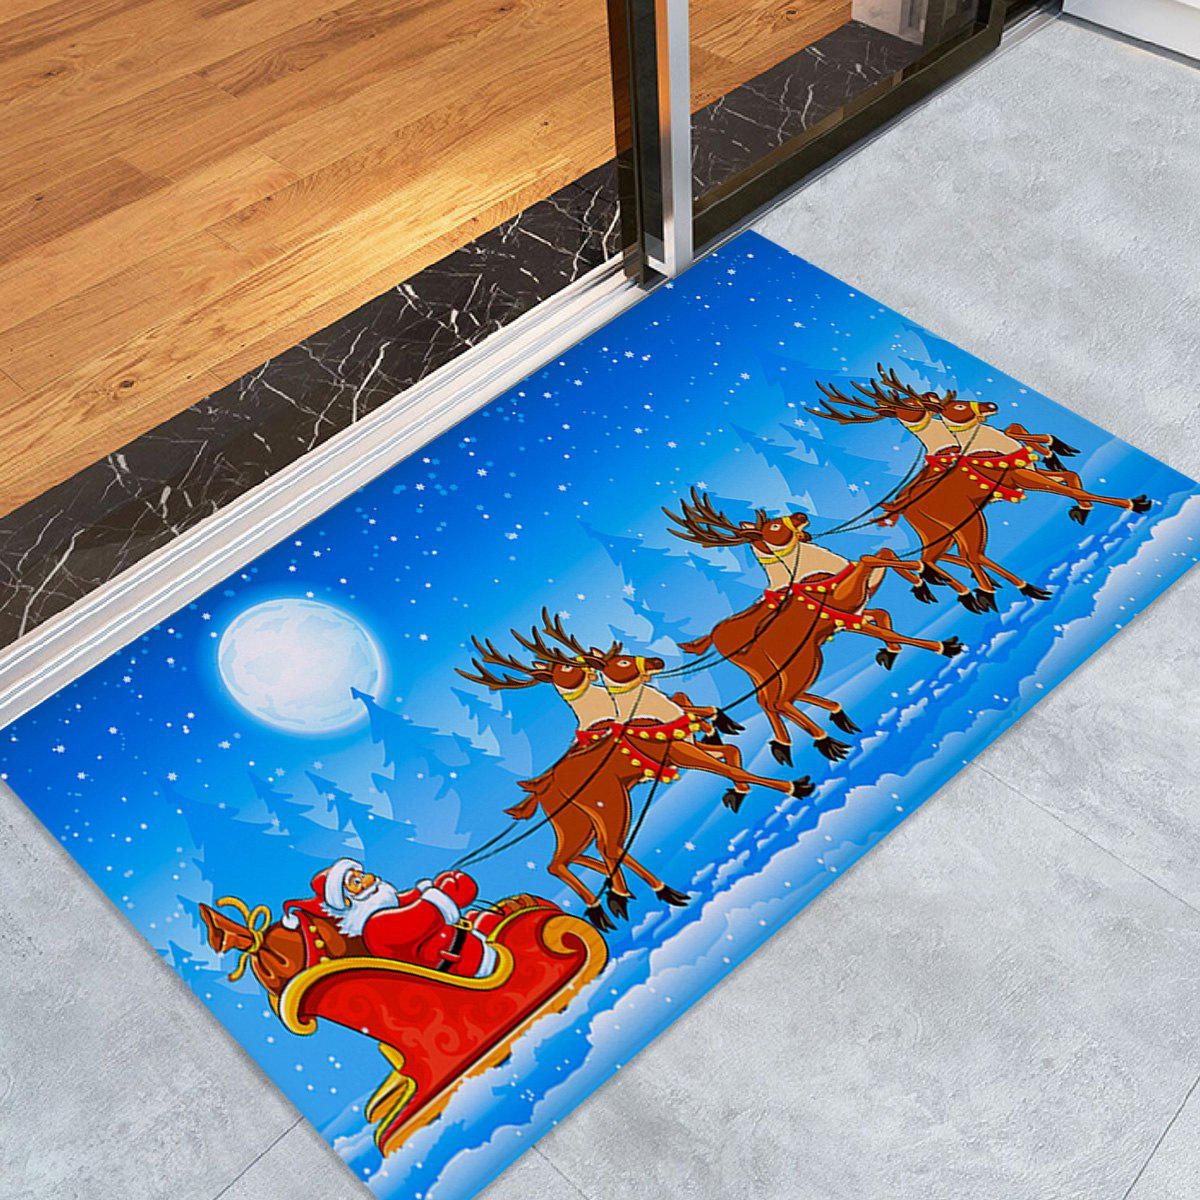 Christmas Sled Pattern Coral Fleece Skidproof Bath RugHOME<br><br>Size: W24 INCH * L35.5 INCH; Color: SKY BLUE; Products Type: Bath rugs; Materials: Coral FLeece; Pattern: Elk,Moon,Santa Claus; Style: Festival; Shape: Rectangular; Package Contents: 1 x Rug;